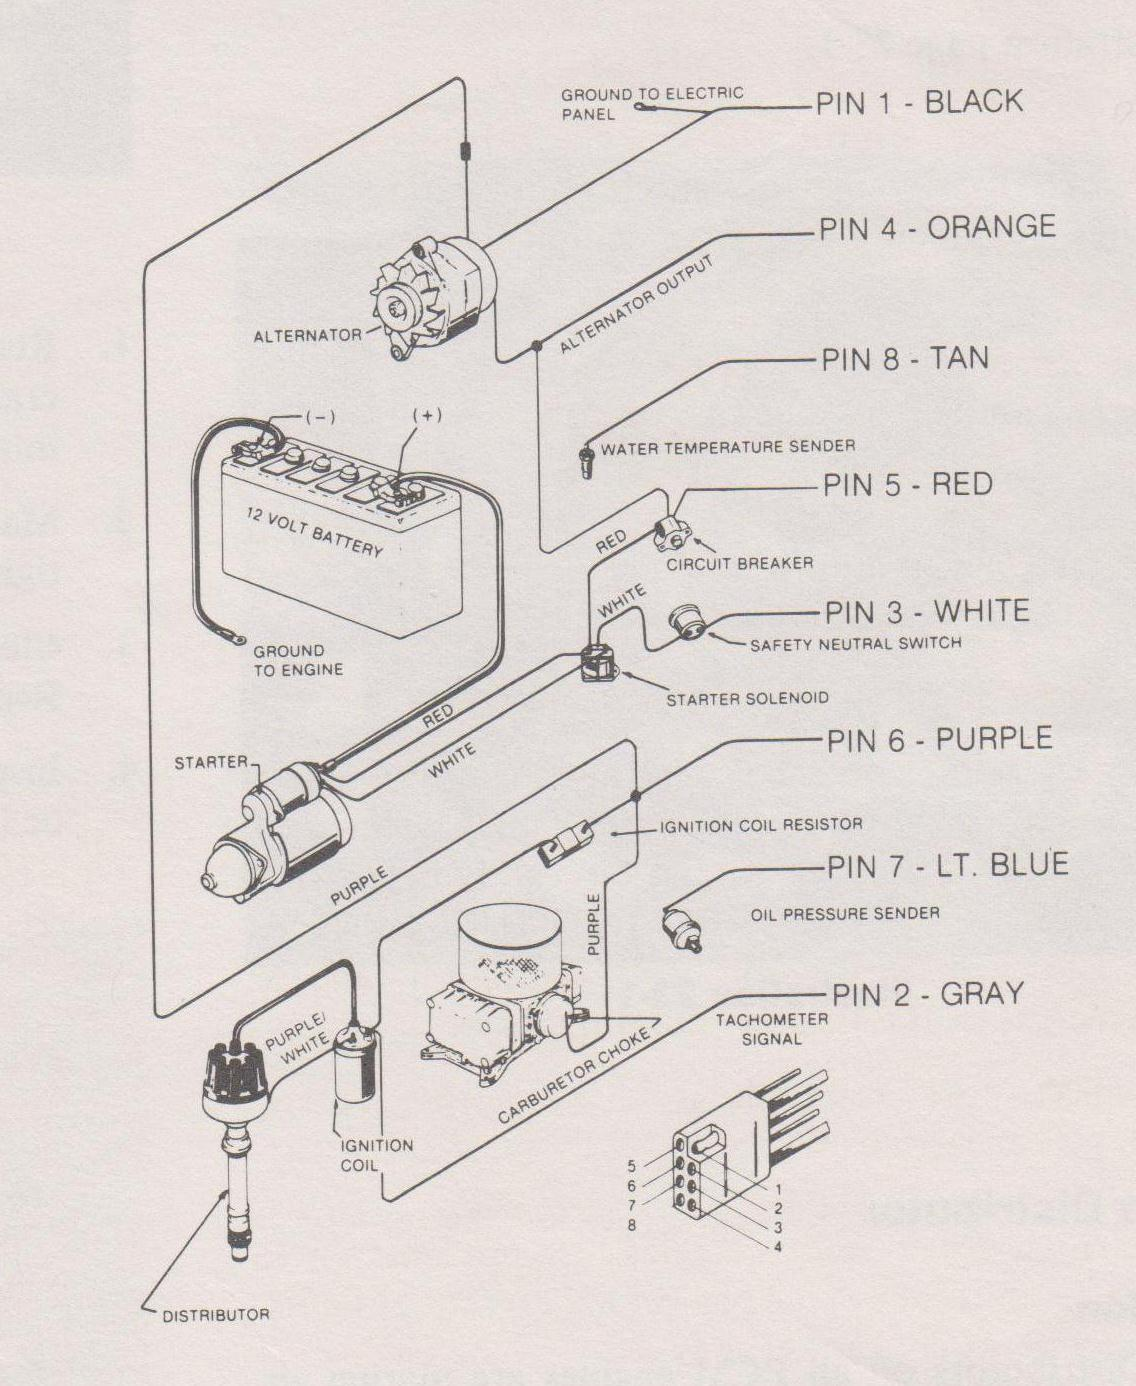 Kia Pride Engine Plug Diagram Wiring Diagram \u2022 Kia Rio Engine Diagram  Kia Pride Engine Diagram